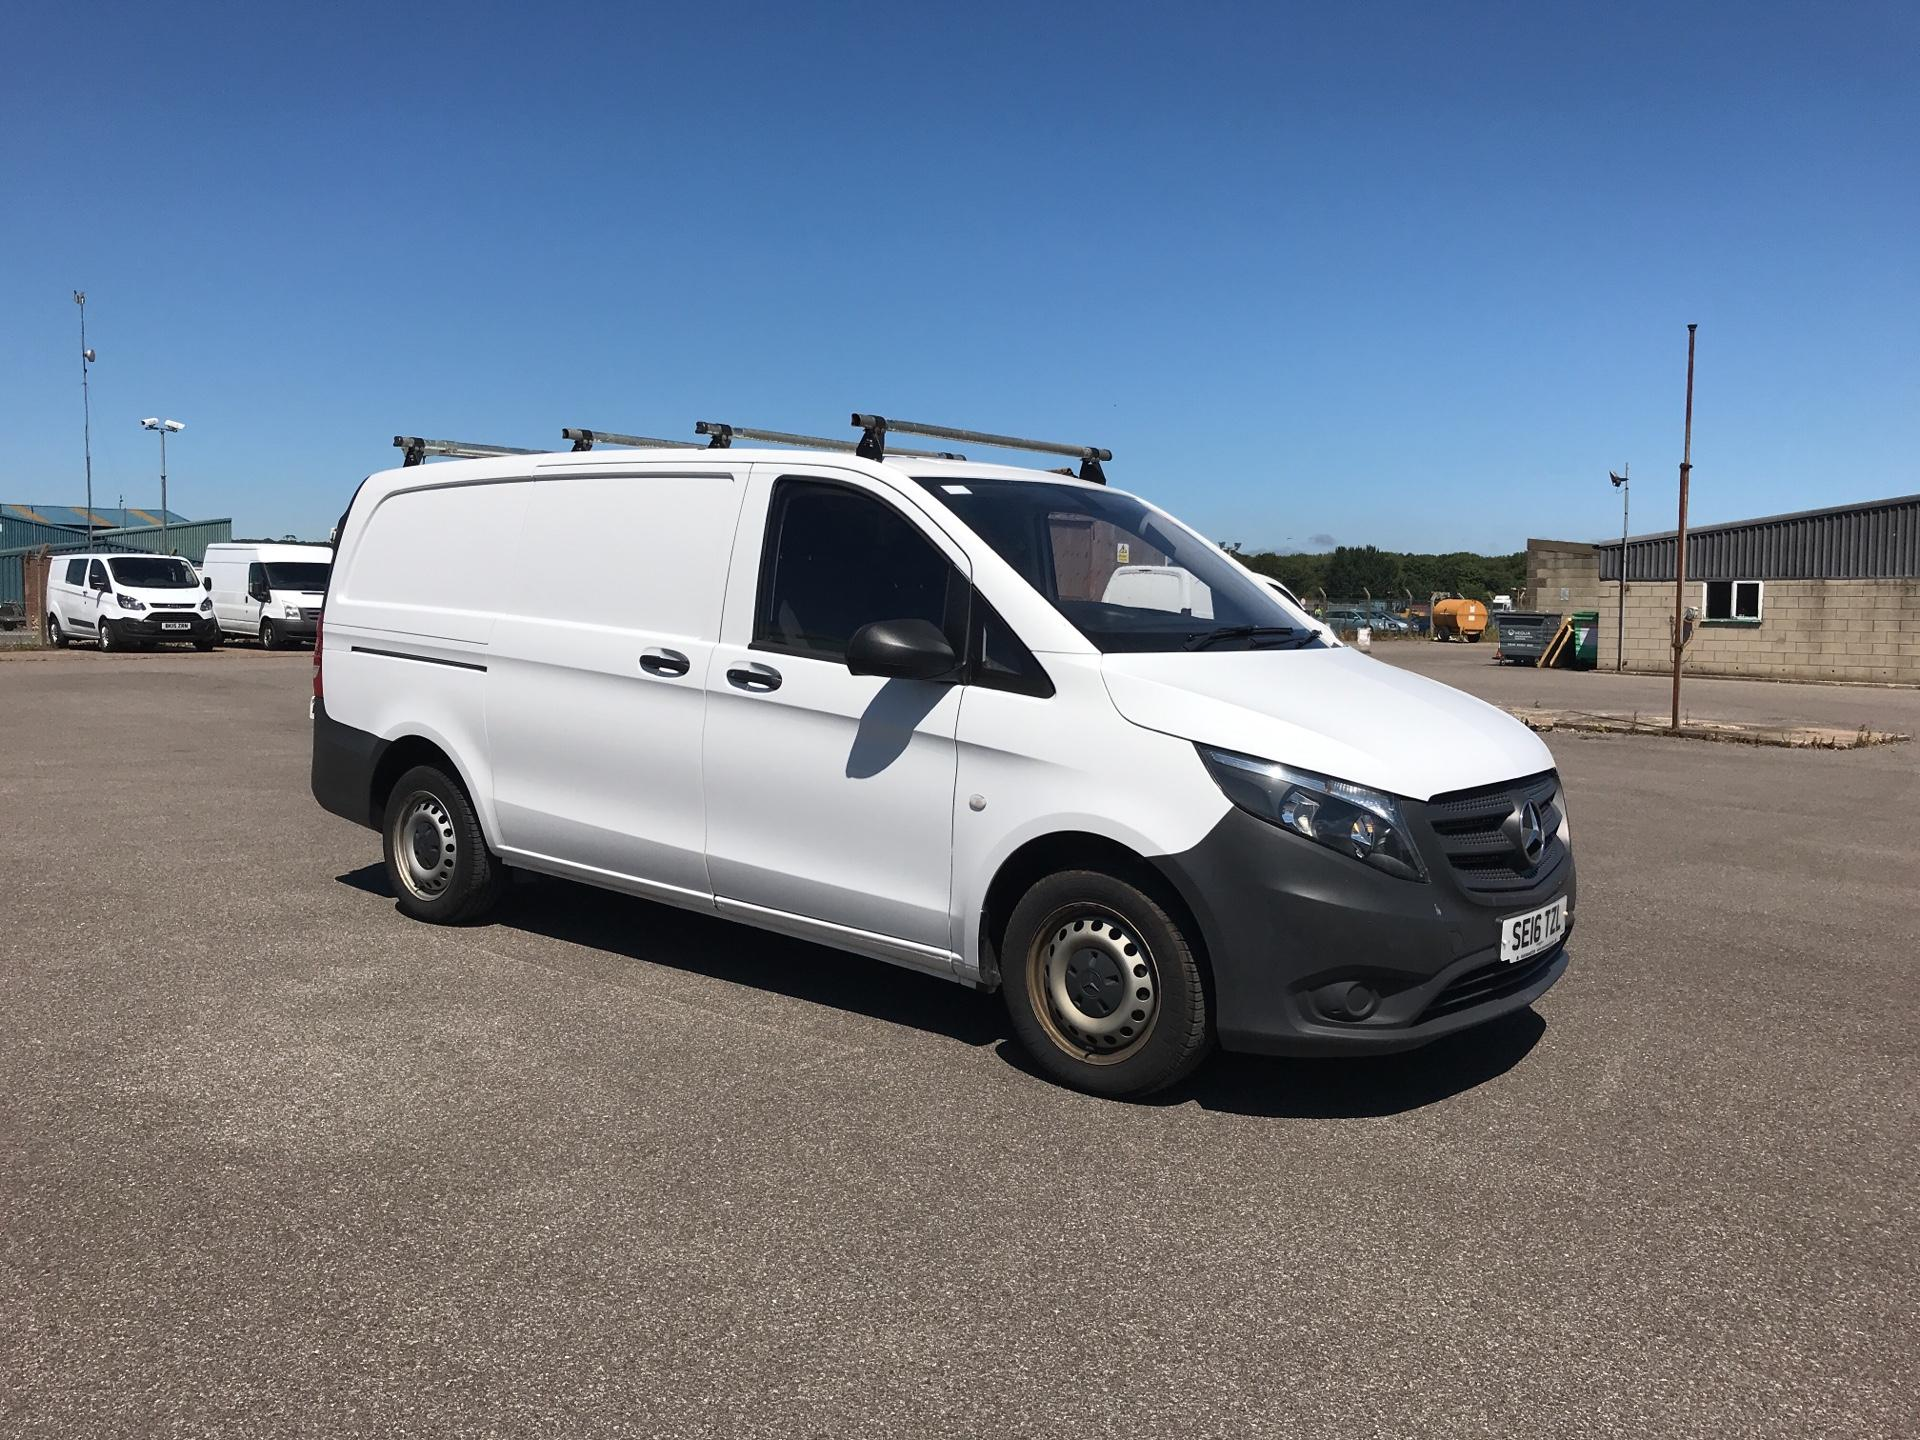 2016 Mercedes-Benz Vito 109 CDI BLUE EFFICIENCY (SE16TZL)